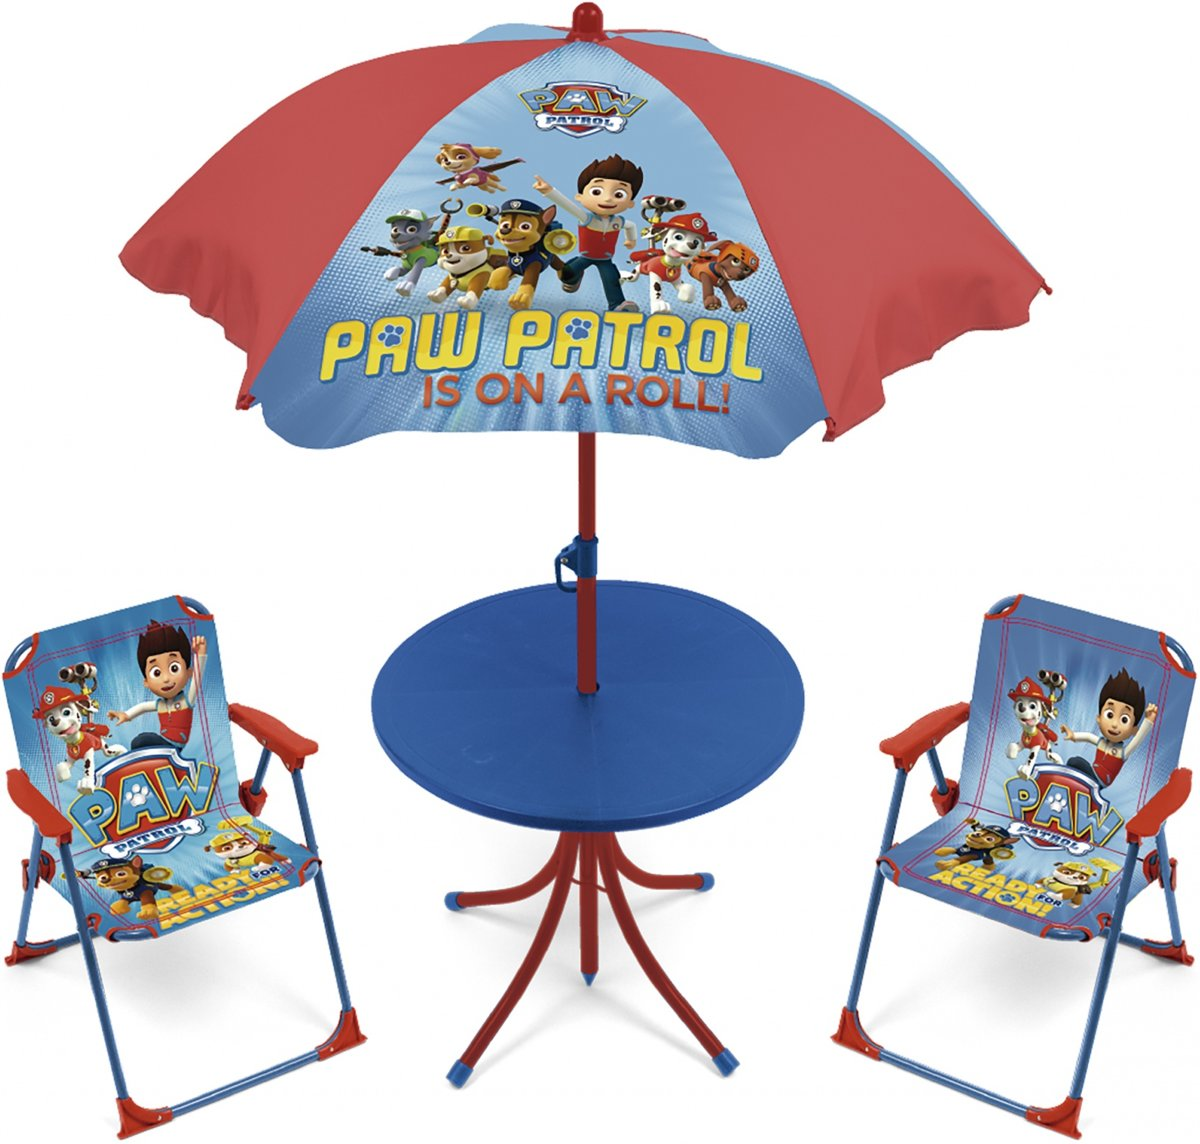 Campingset Paw Patrol Junior Blauw/rood 4-delig